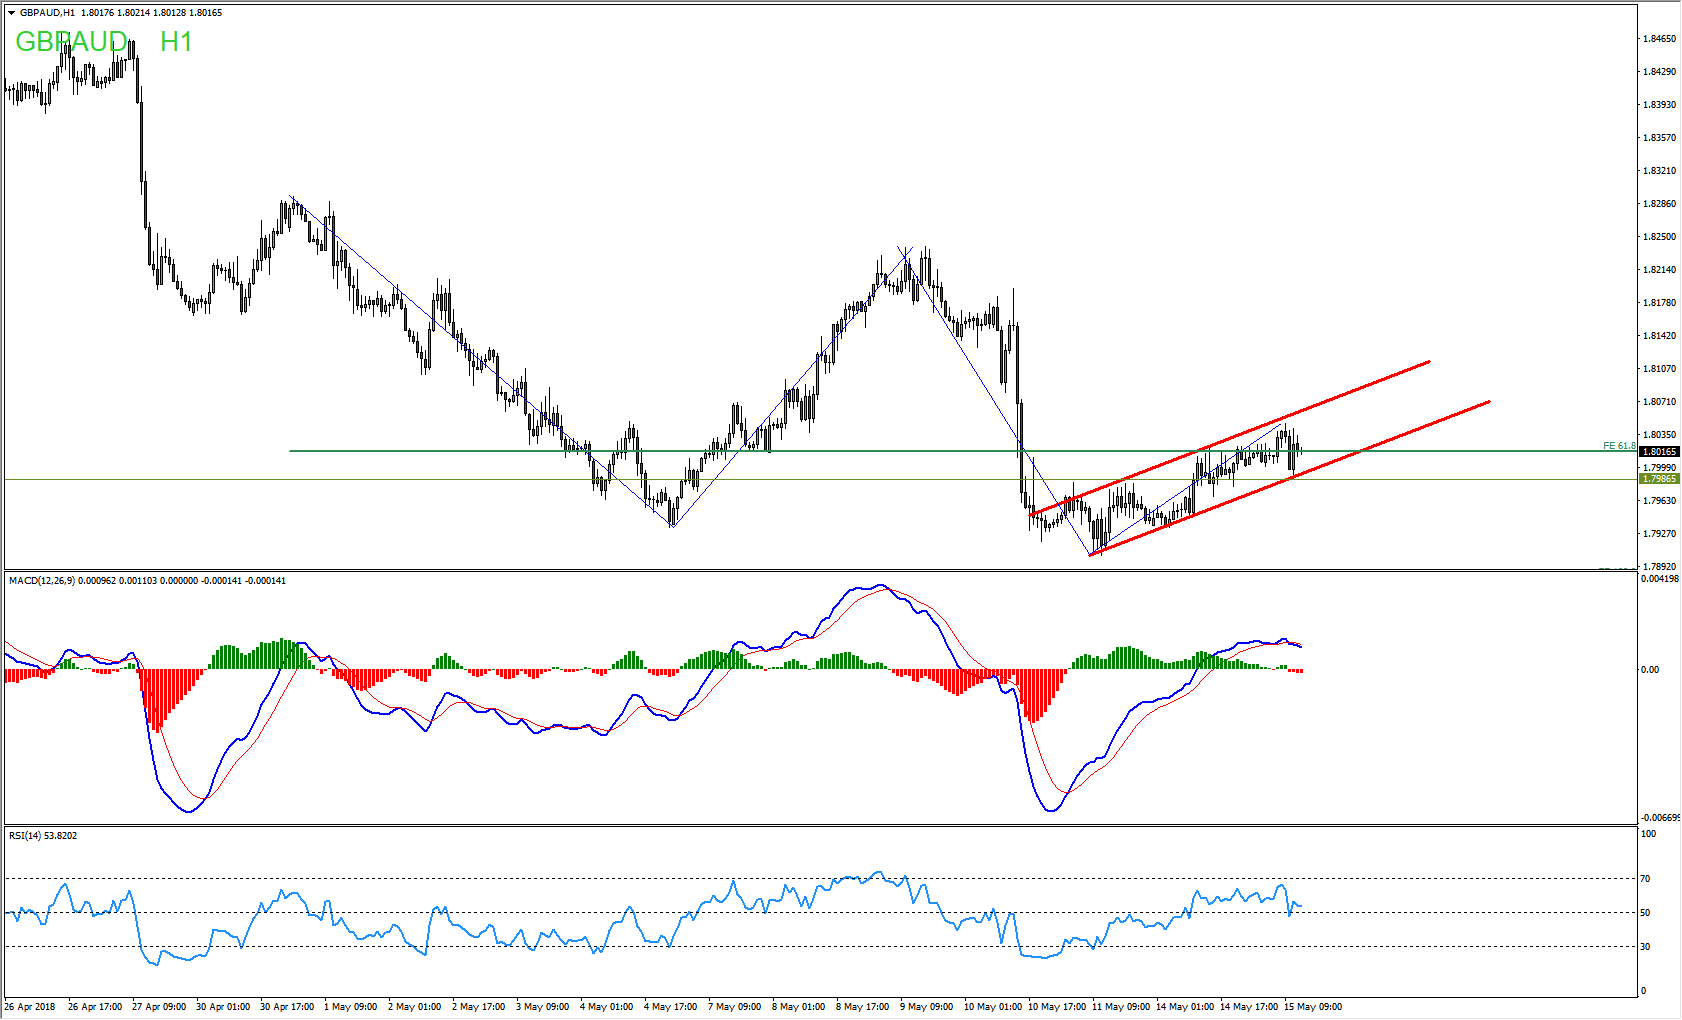 GBPAUD Bearish Flag Provides Sell Opportunity